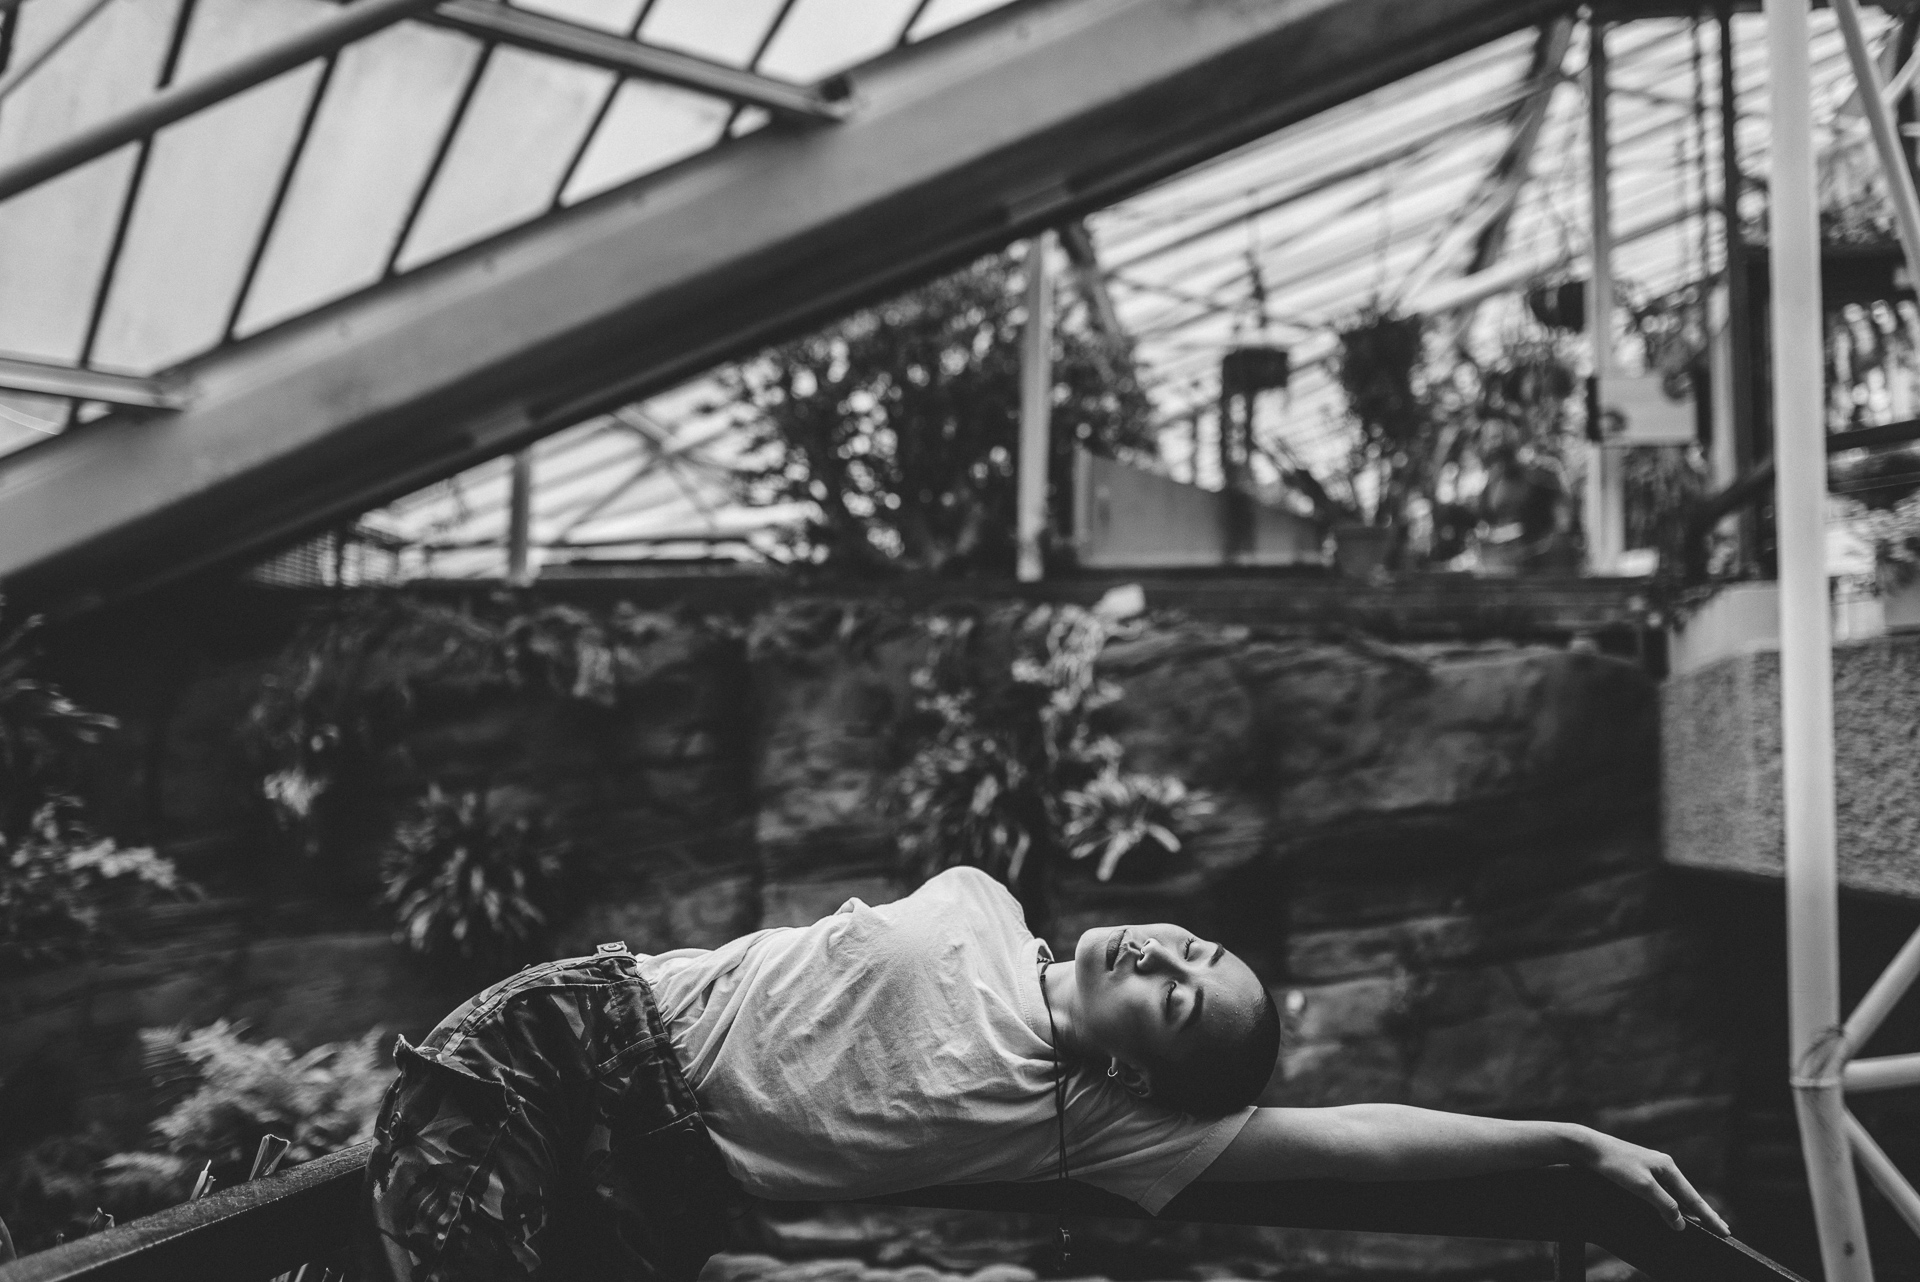 Dancer lying on banister in the Barbican Conservatory. London dance photography